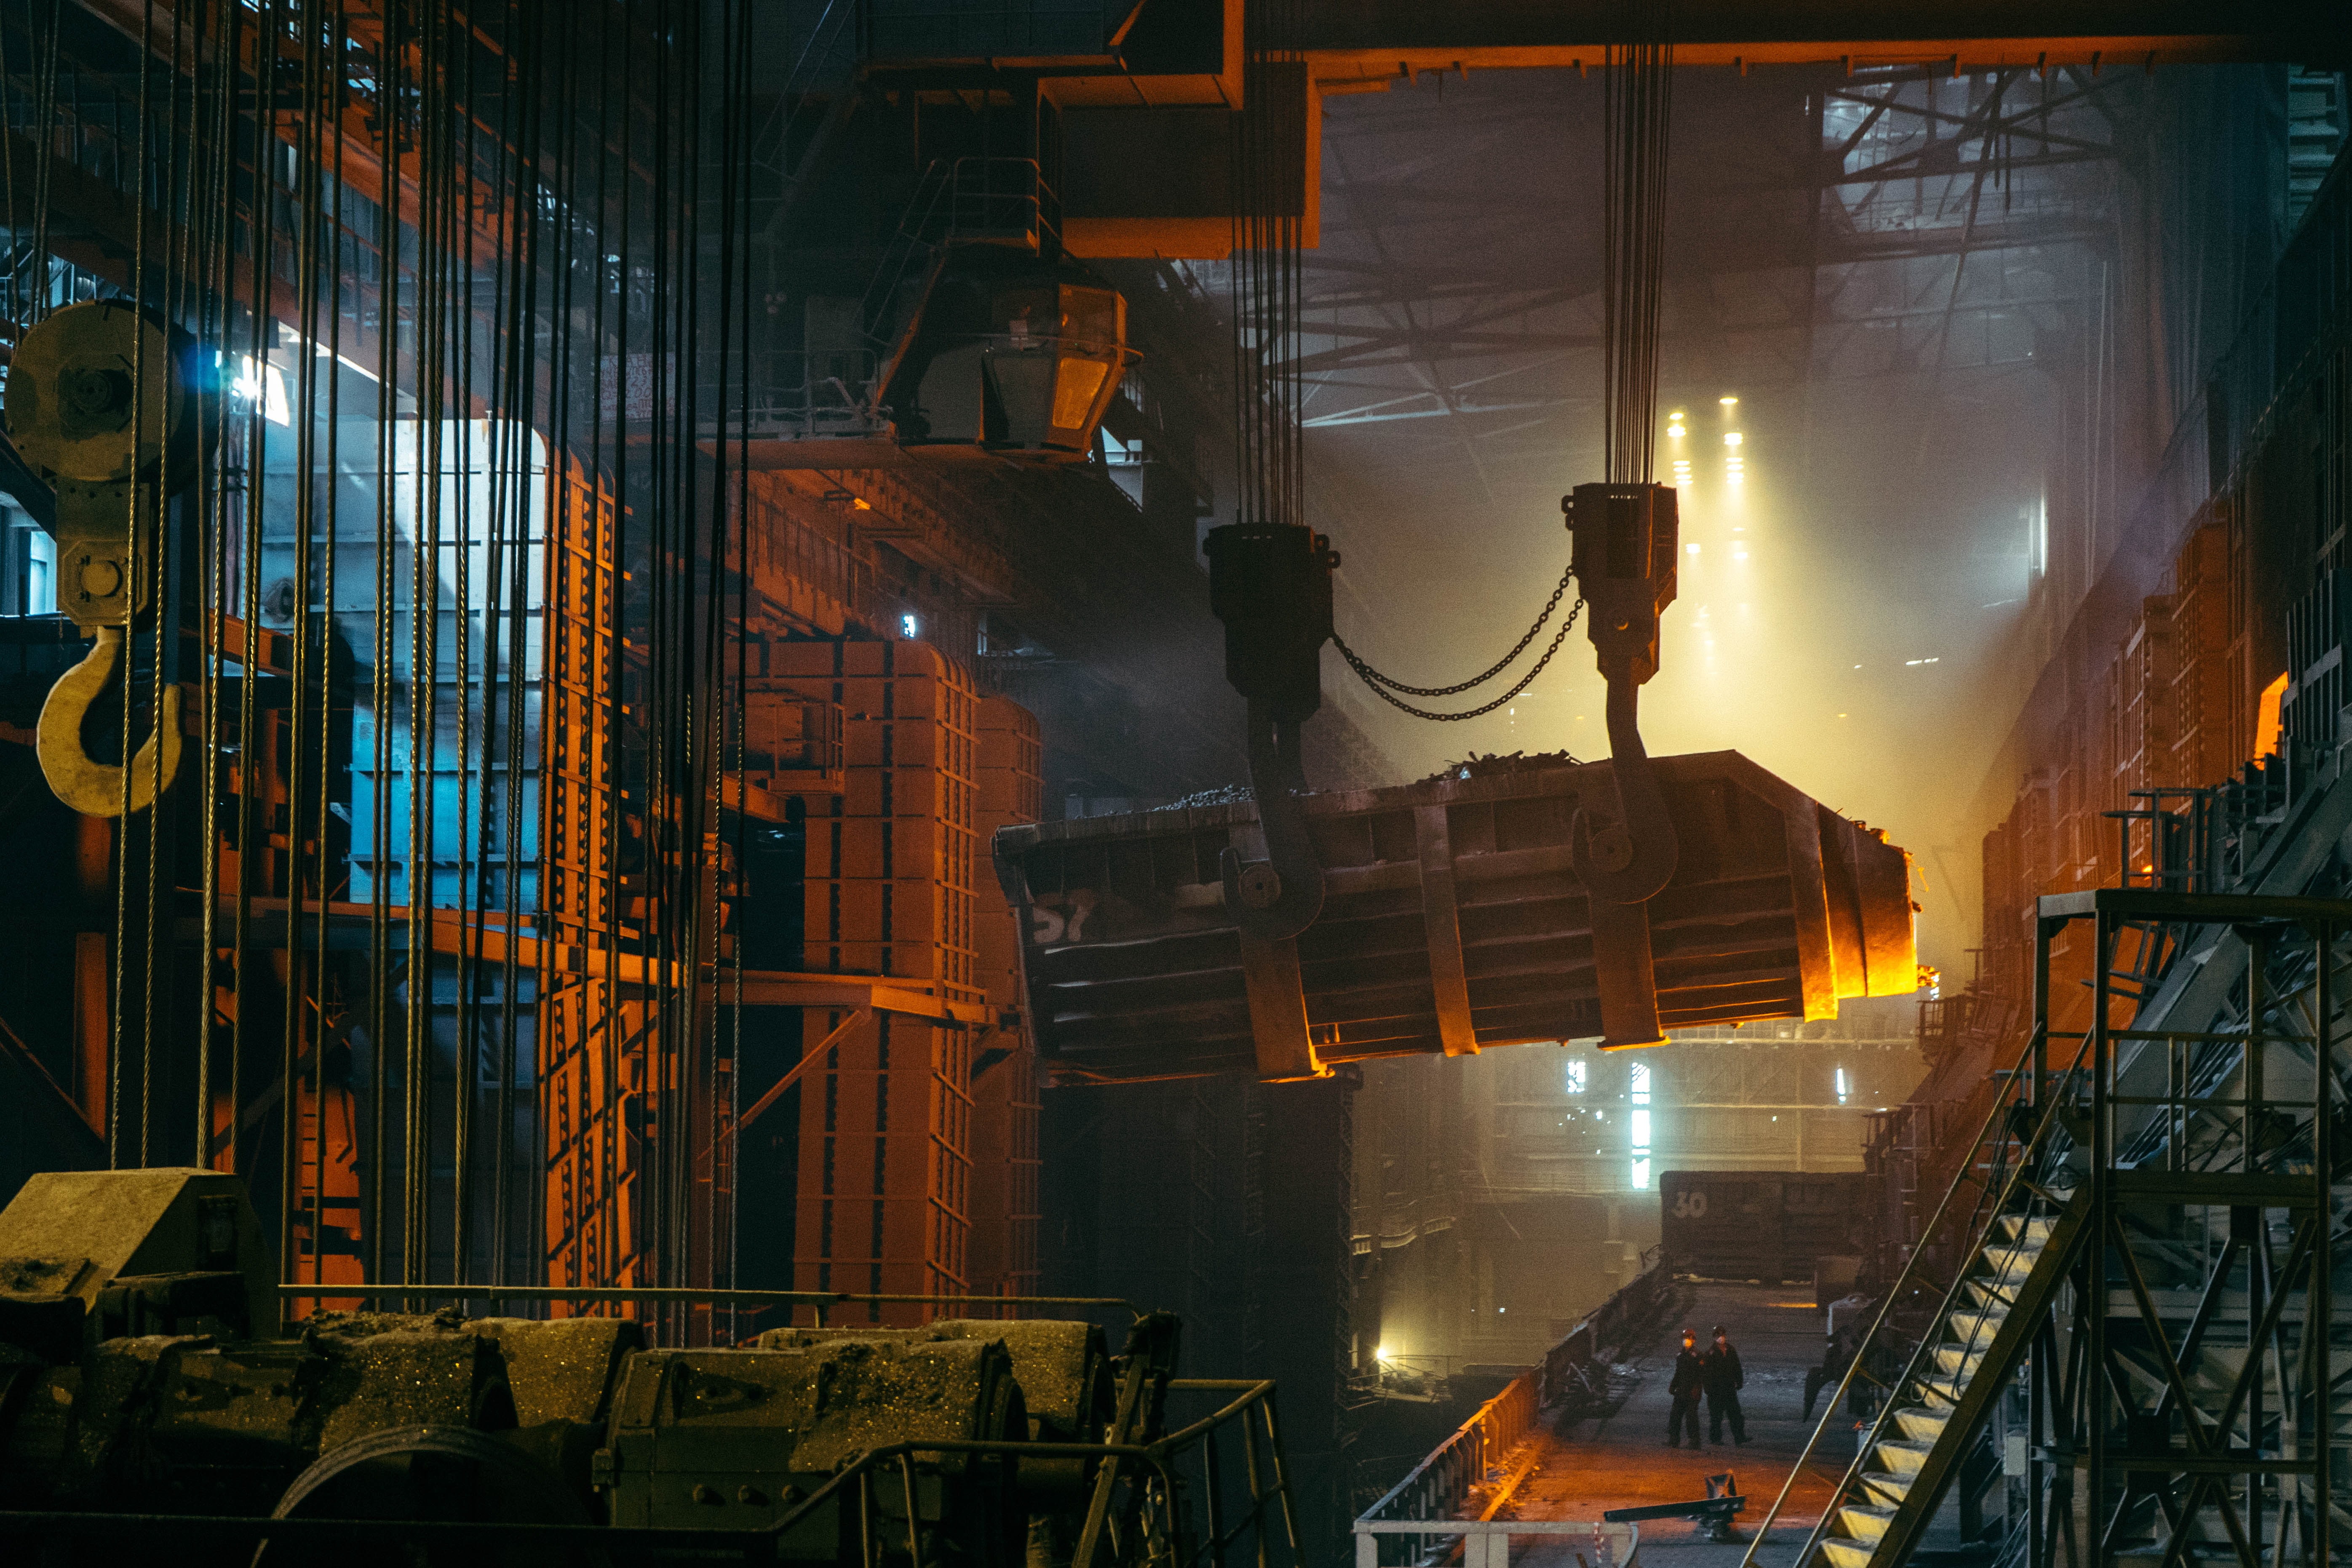 Two men in a steelworks with a crane moving the material over their heads